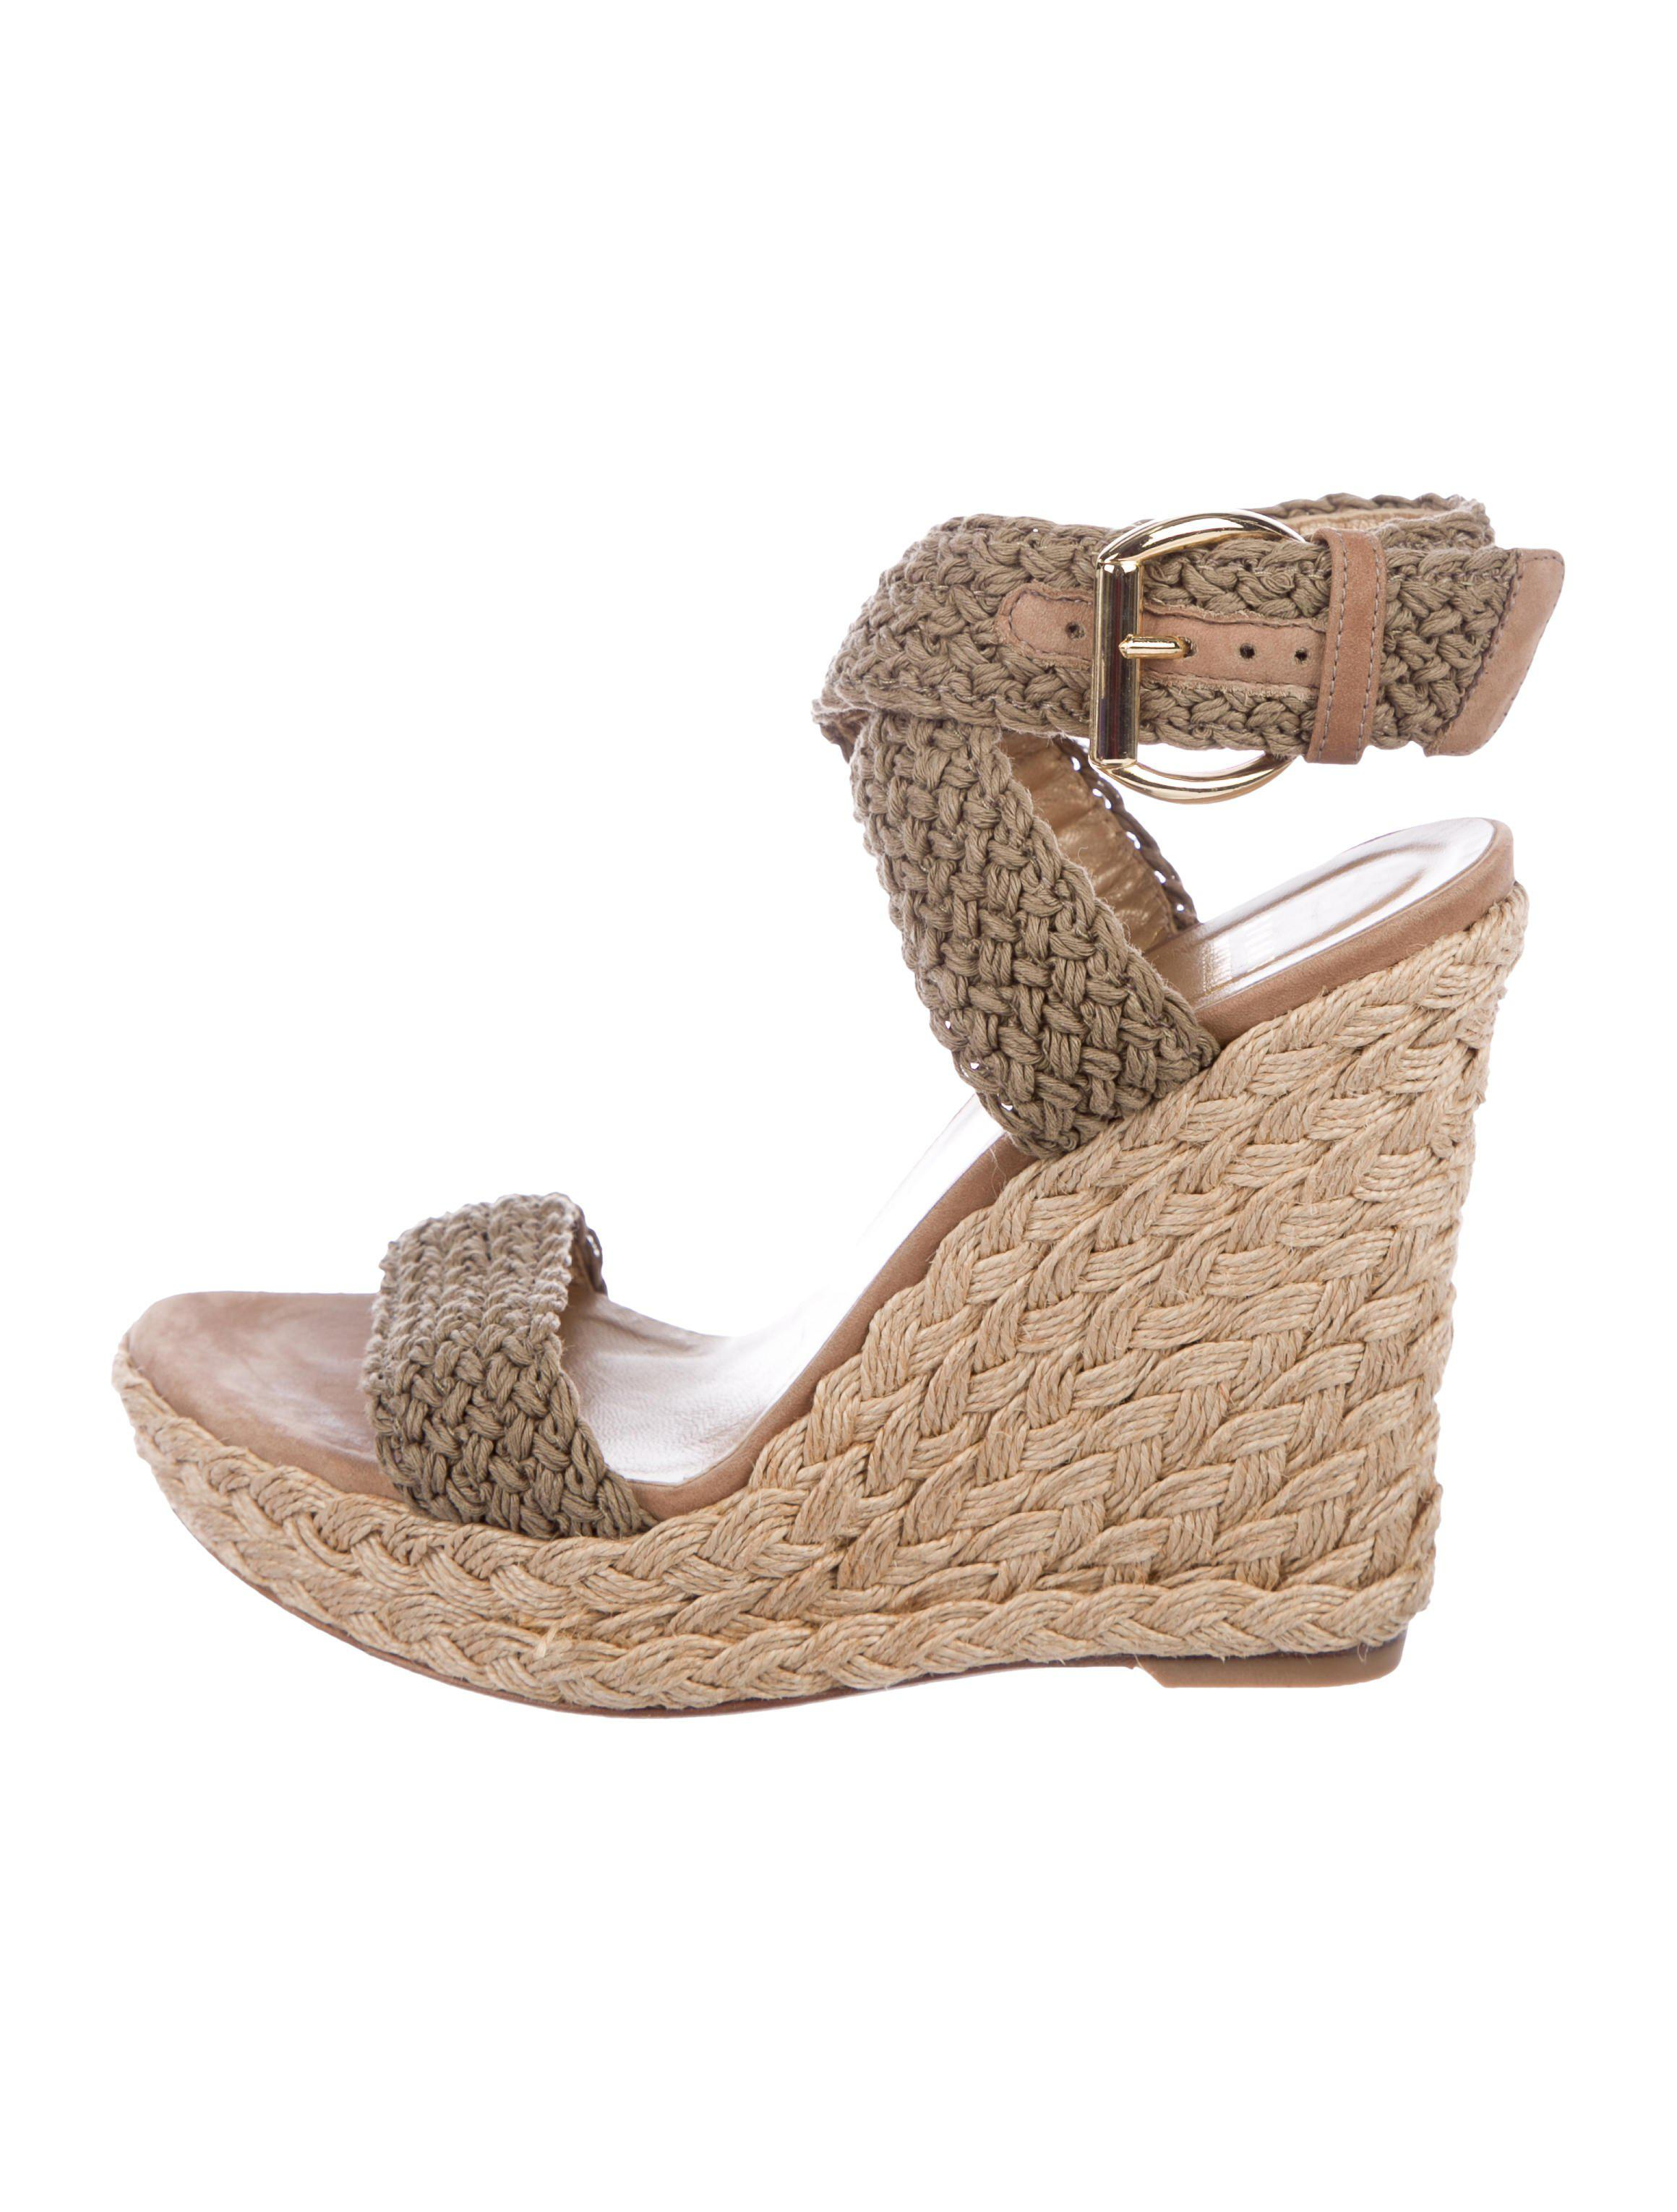 ef2c77013577 Lyst - Stuart Weitzman Woven Wedge Sandals Olive in Green